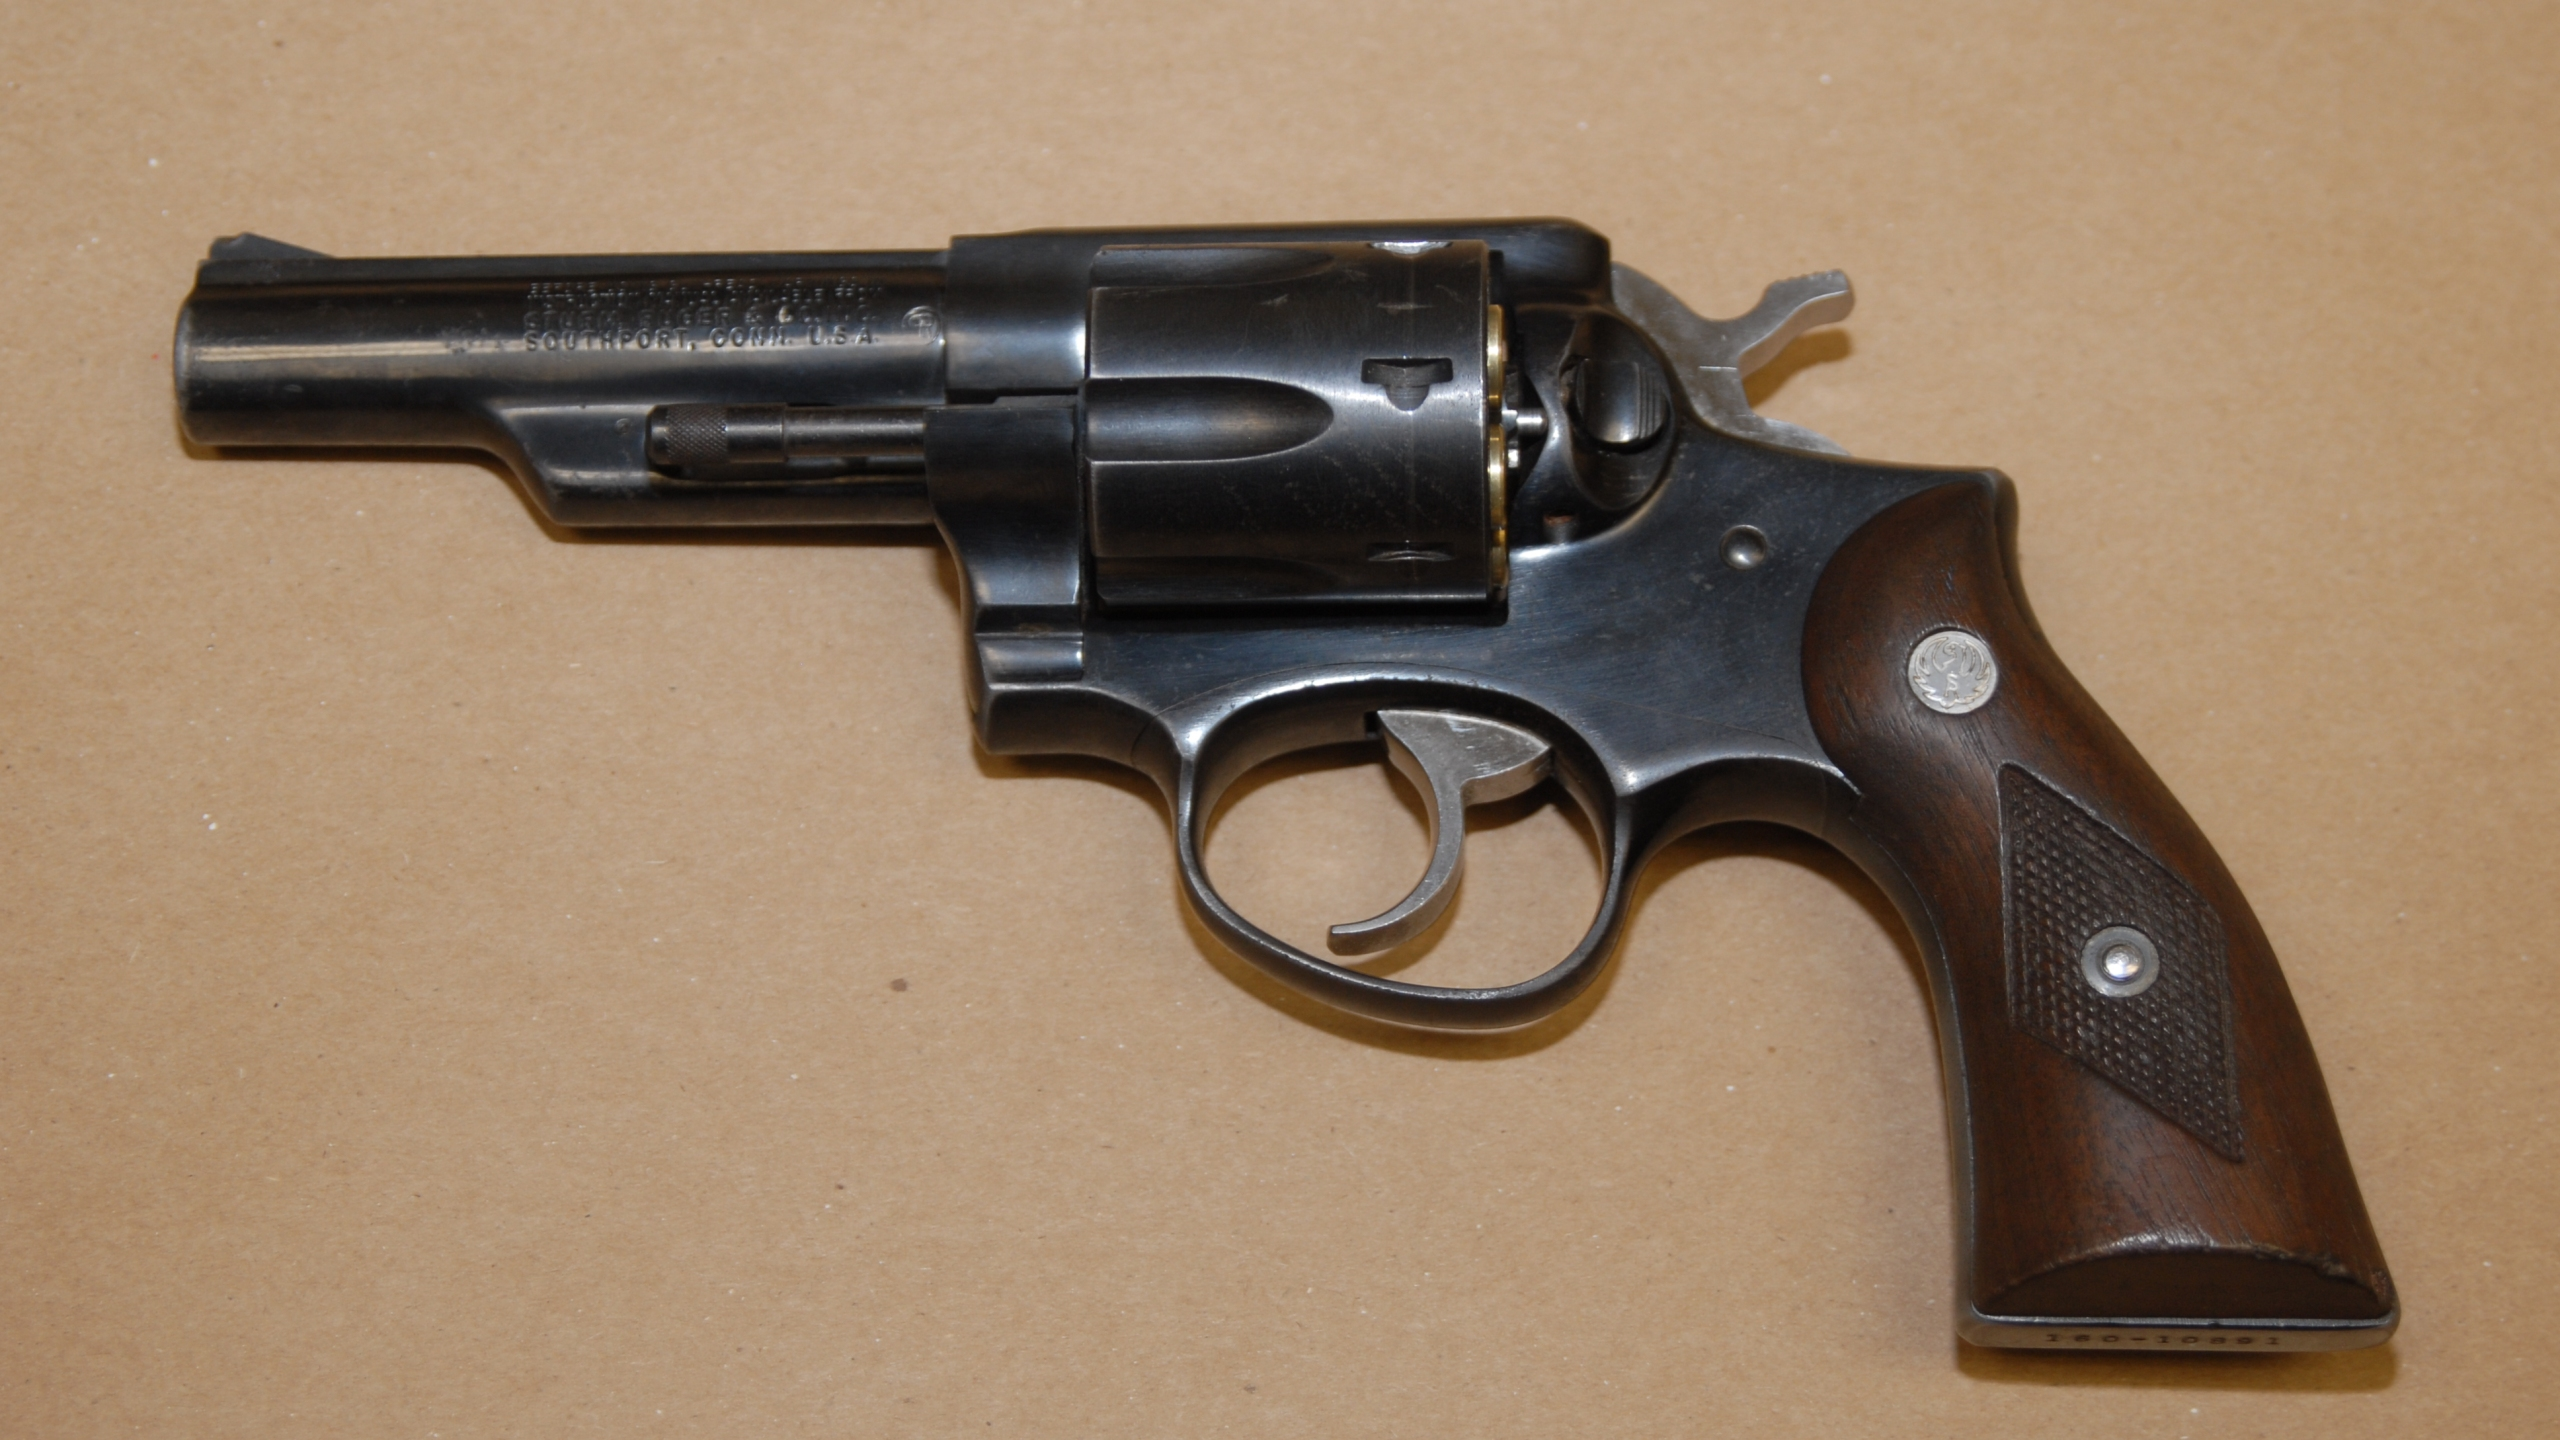 Revolver recovered from 16 year old suspect on Quail Street.